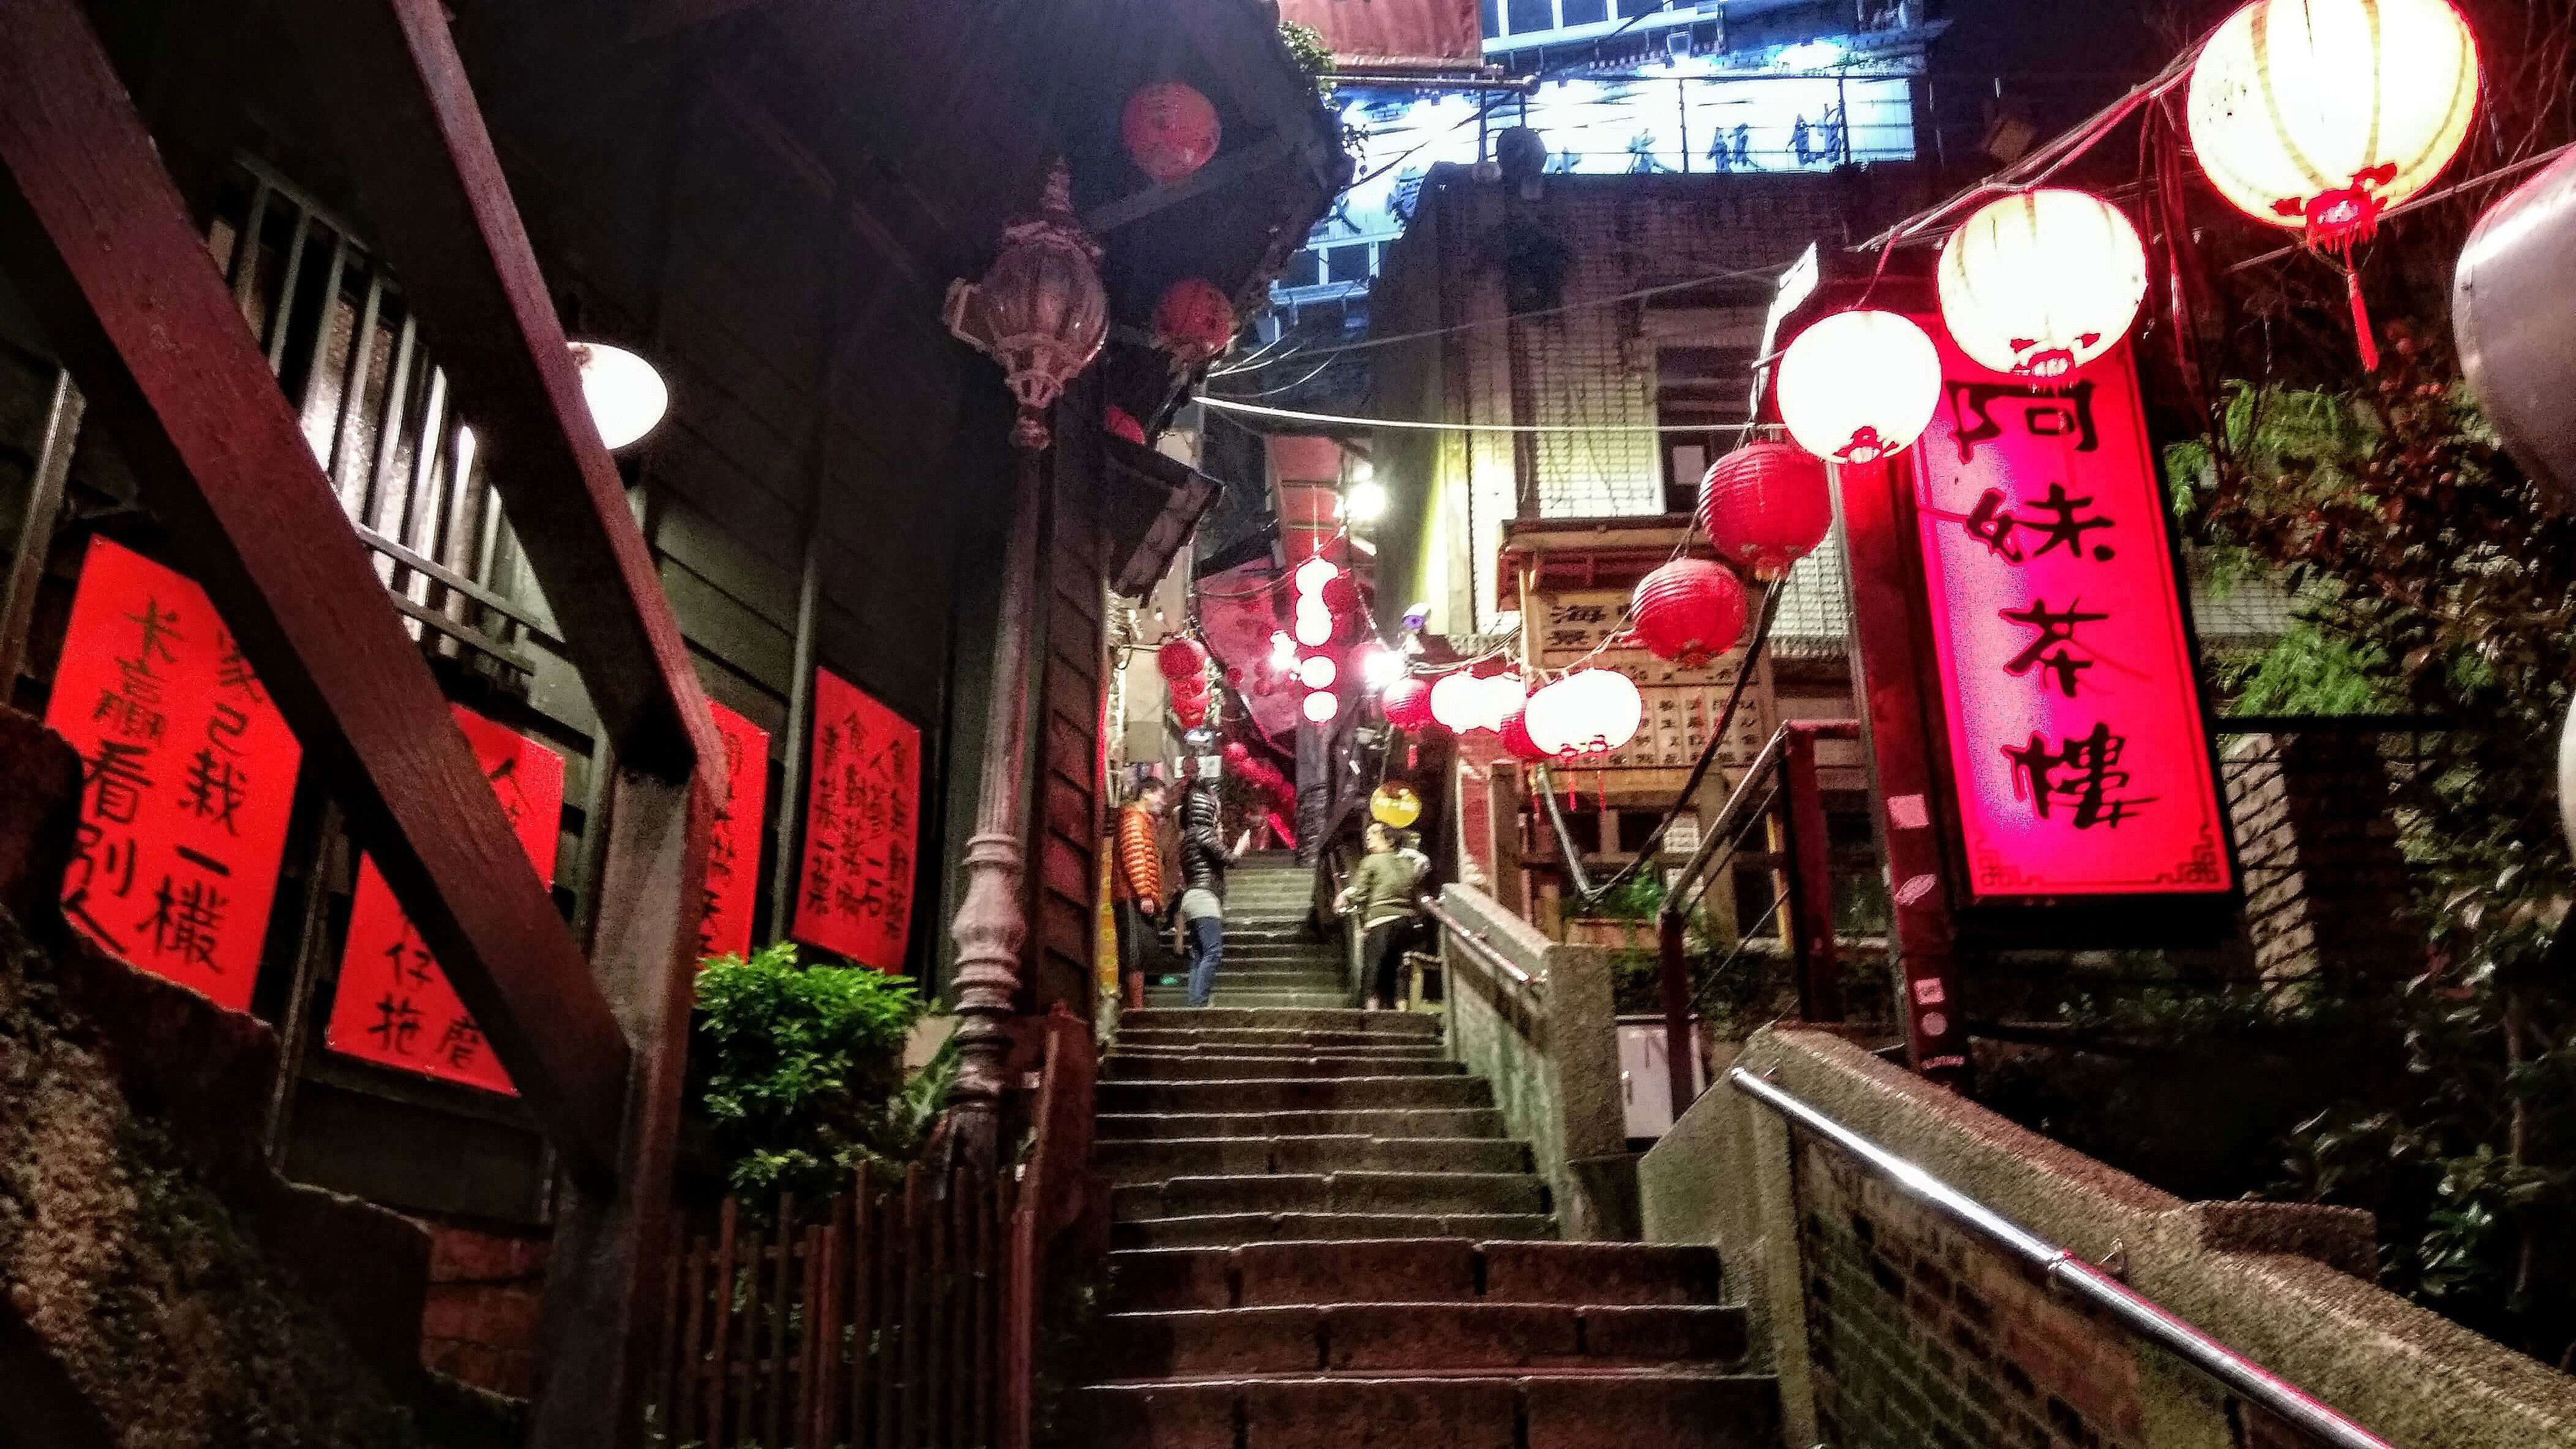 Lanterns lining the steps of Jiufen Old Street